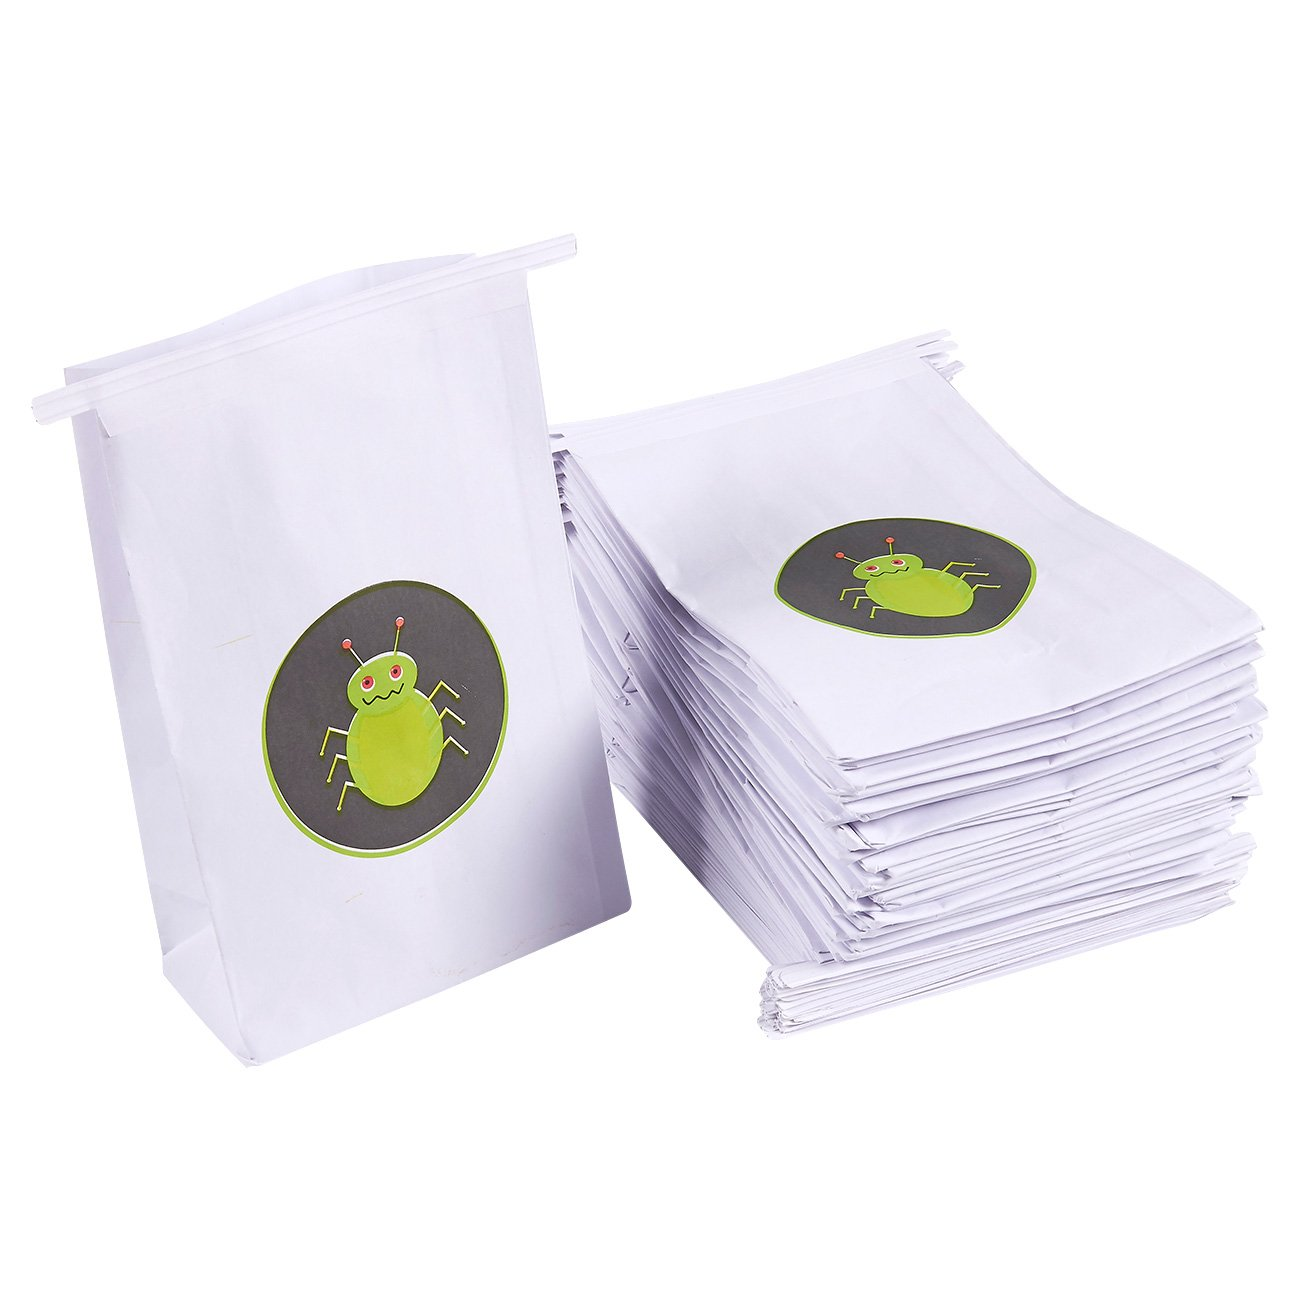 50 Pack Vomit Bags - Kids' Bug Illustration Disposable Self-Sealing Leak Resistant Throw Up Bags for Motion Sickness, Morning Sickness, Lyft, Car, Airline Travel, Barf Bag White, 6 x 9 x 2.7 Inches